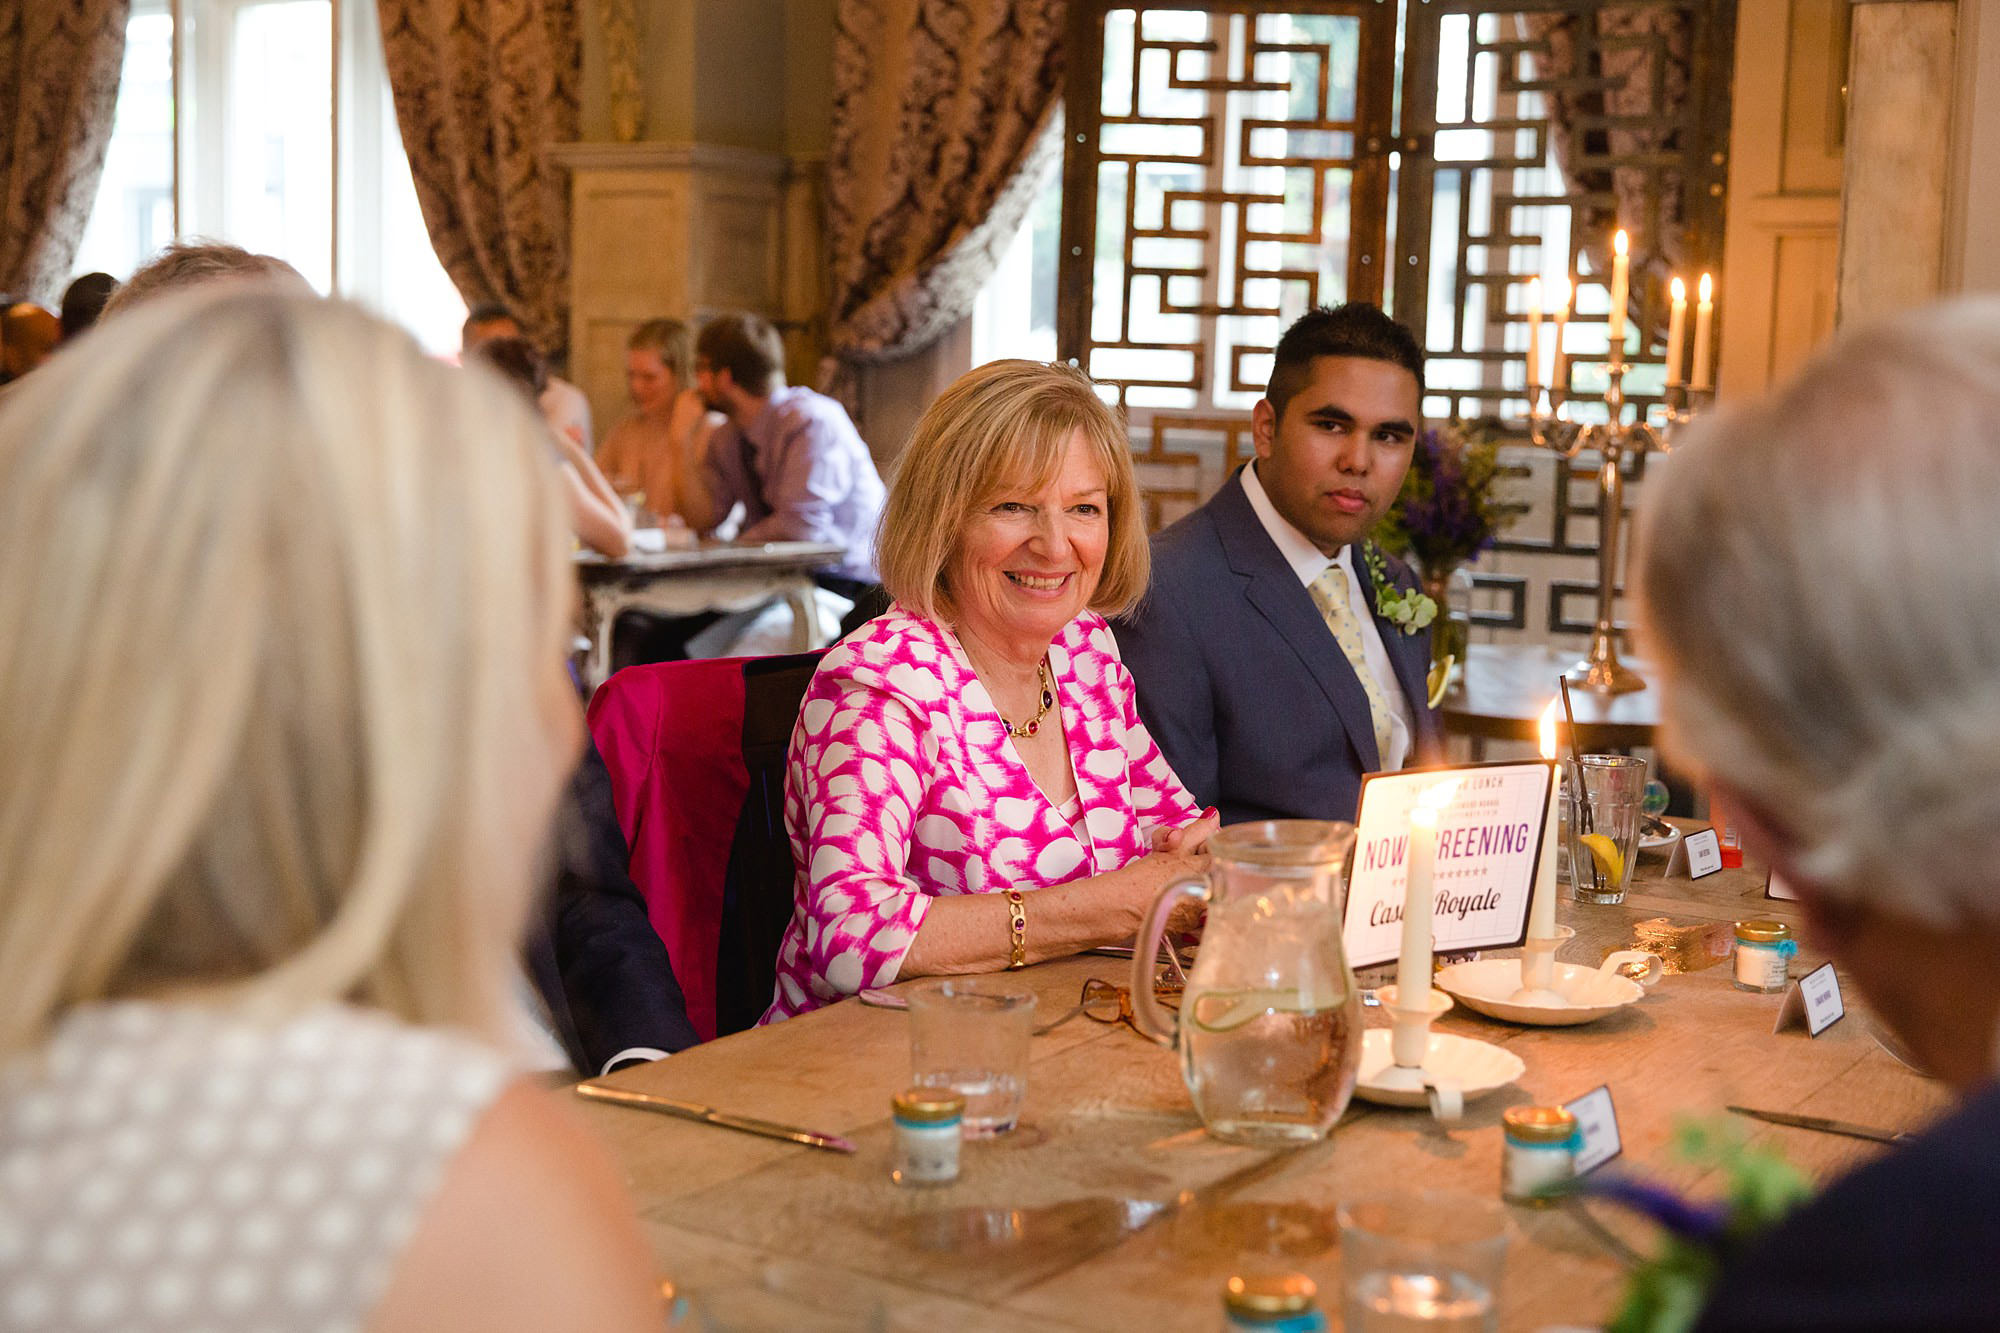 Paradise by way of Kensal Green wedding portrait of wedding guests during dinner